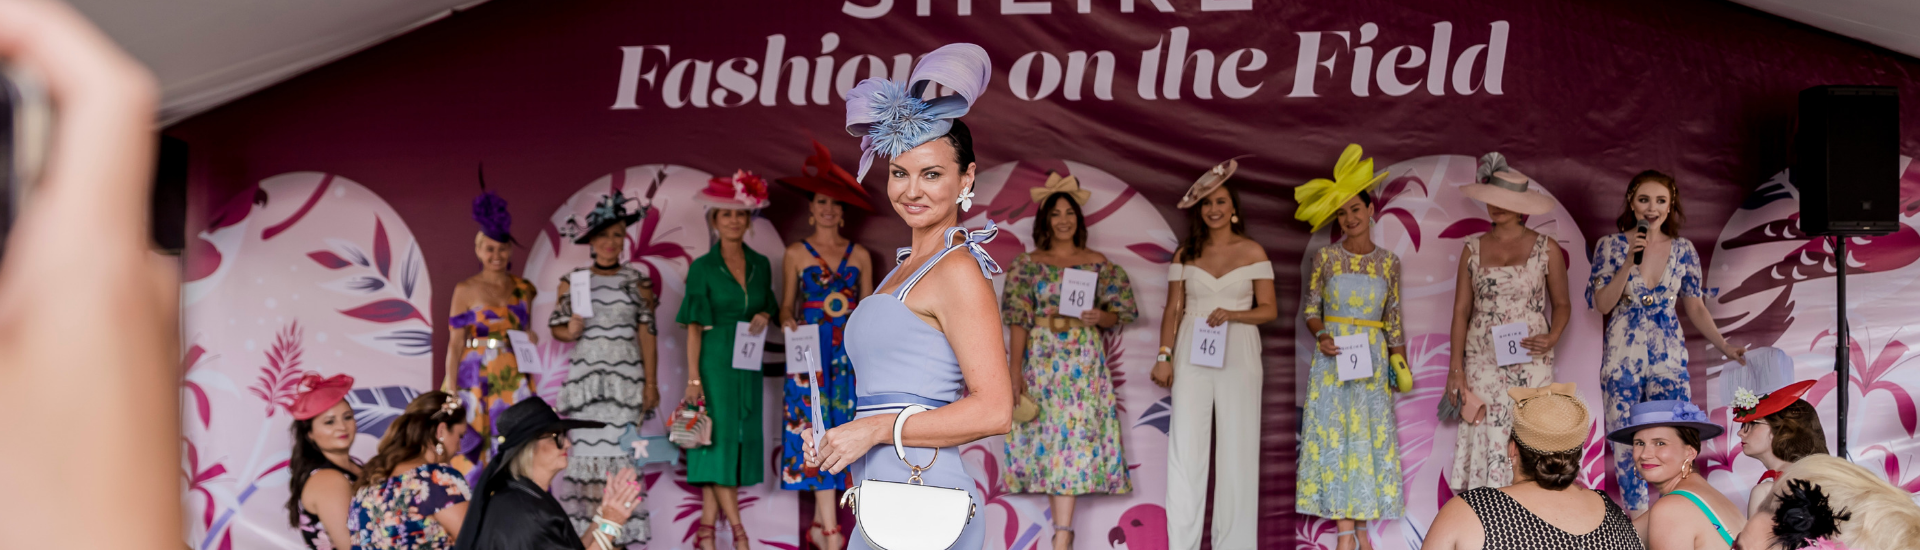 Fashions On The Field | Brisbane Racing Club